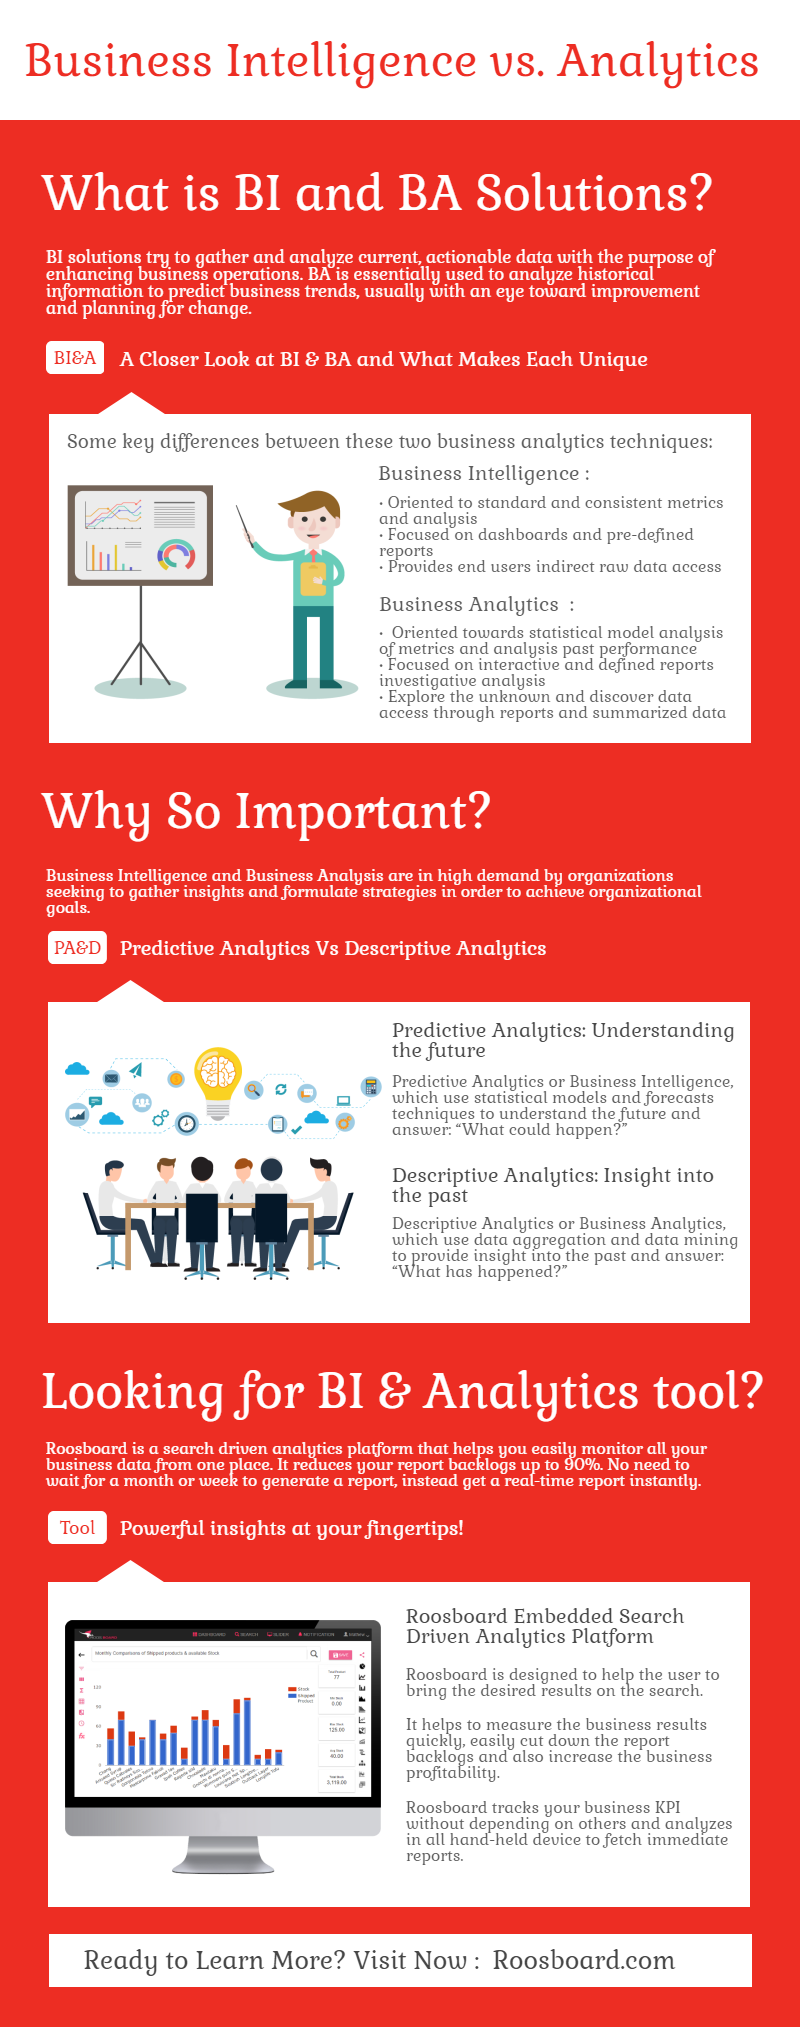 Know Your Solutions: BI or BA